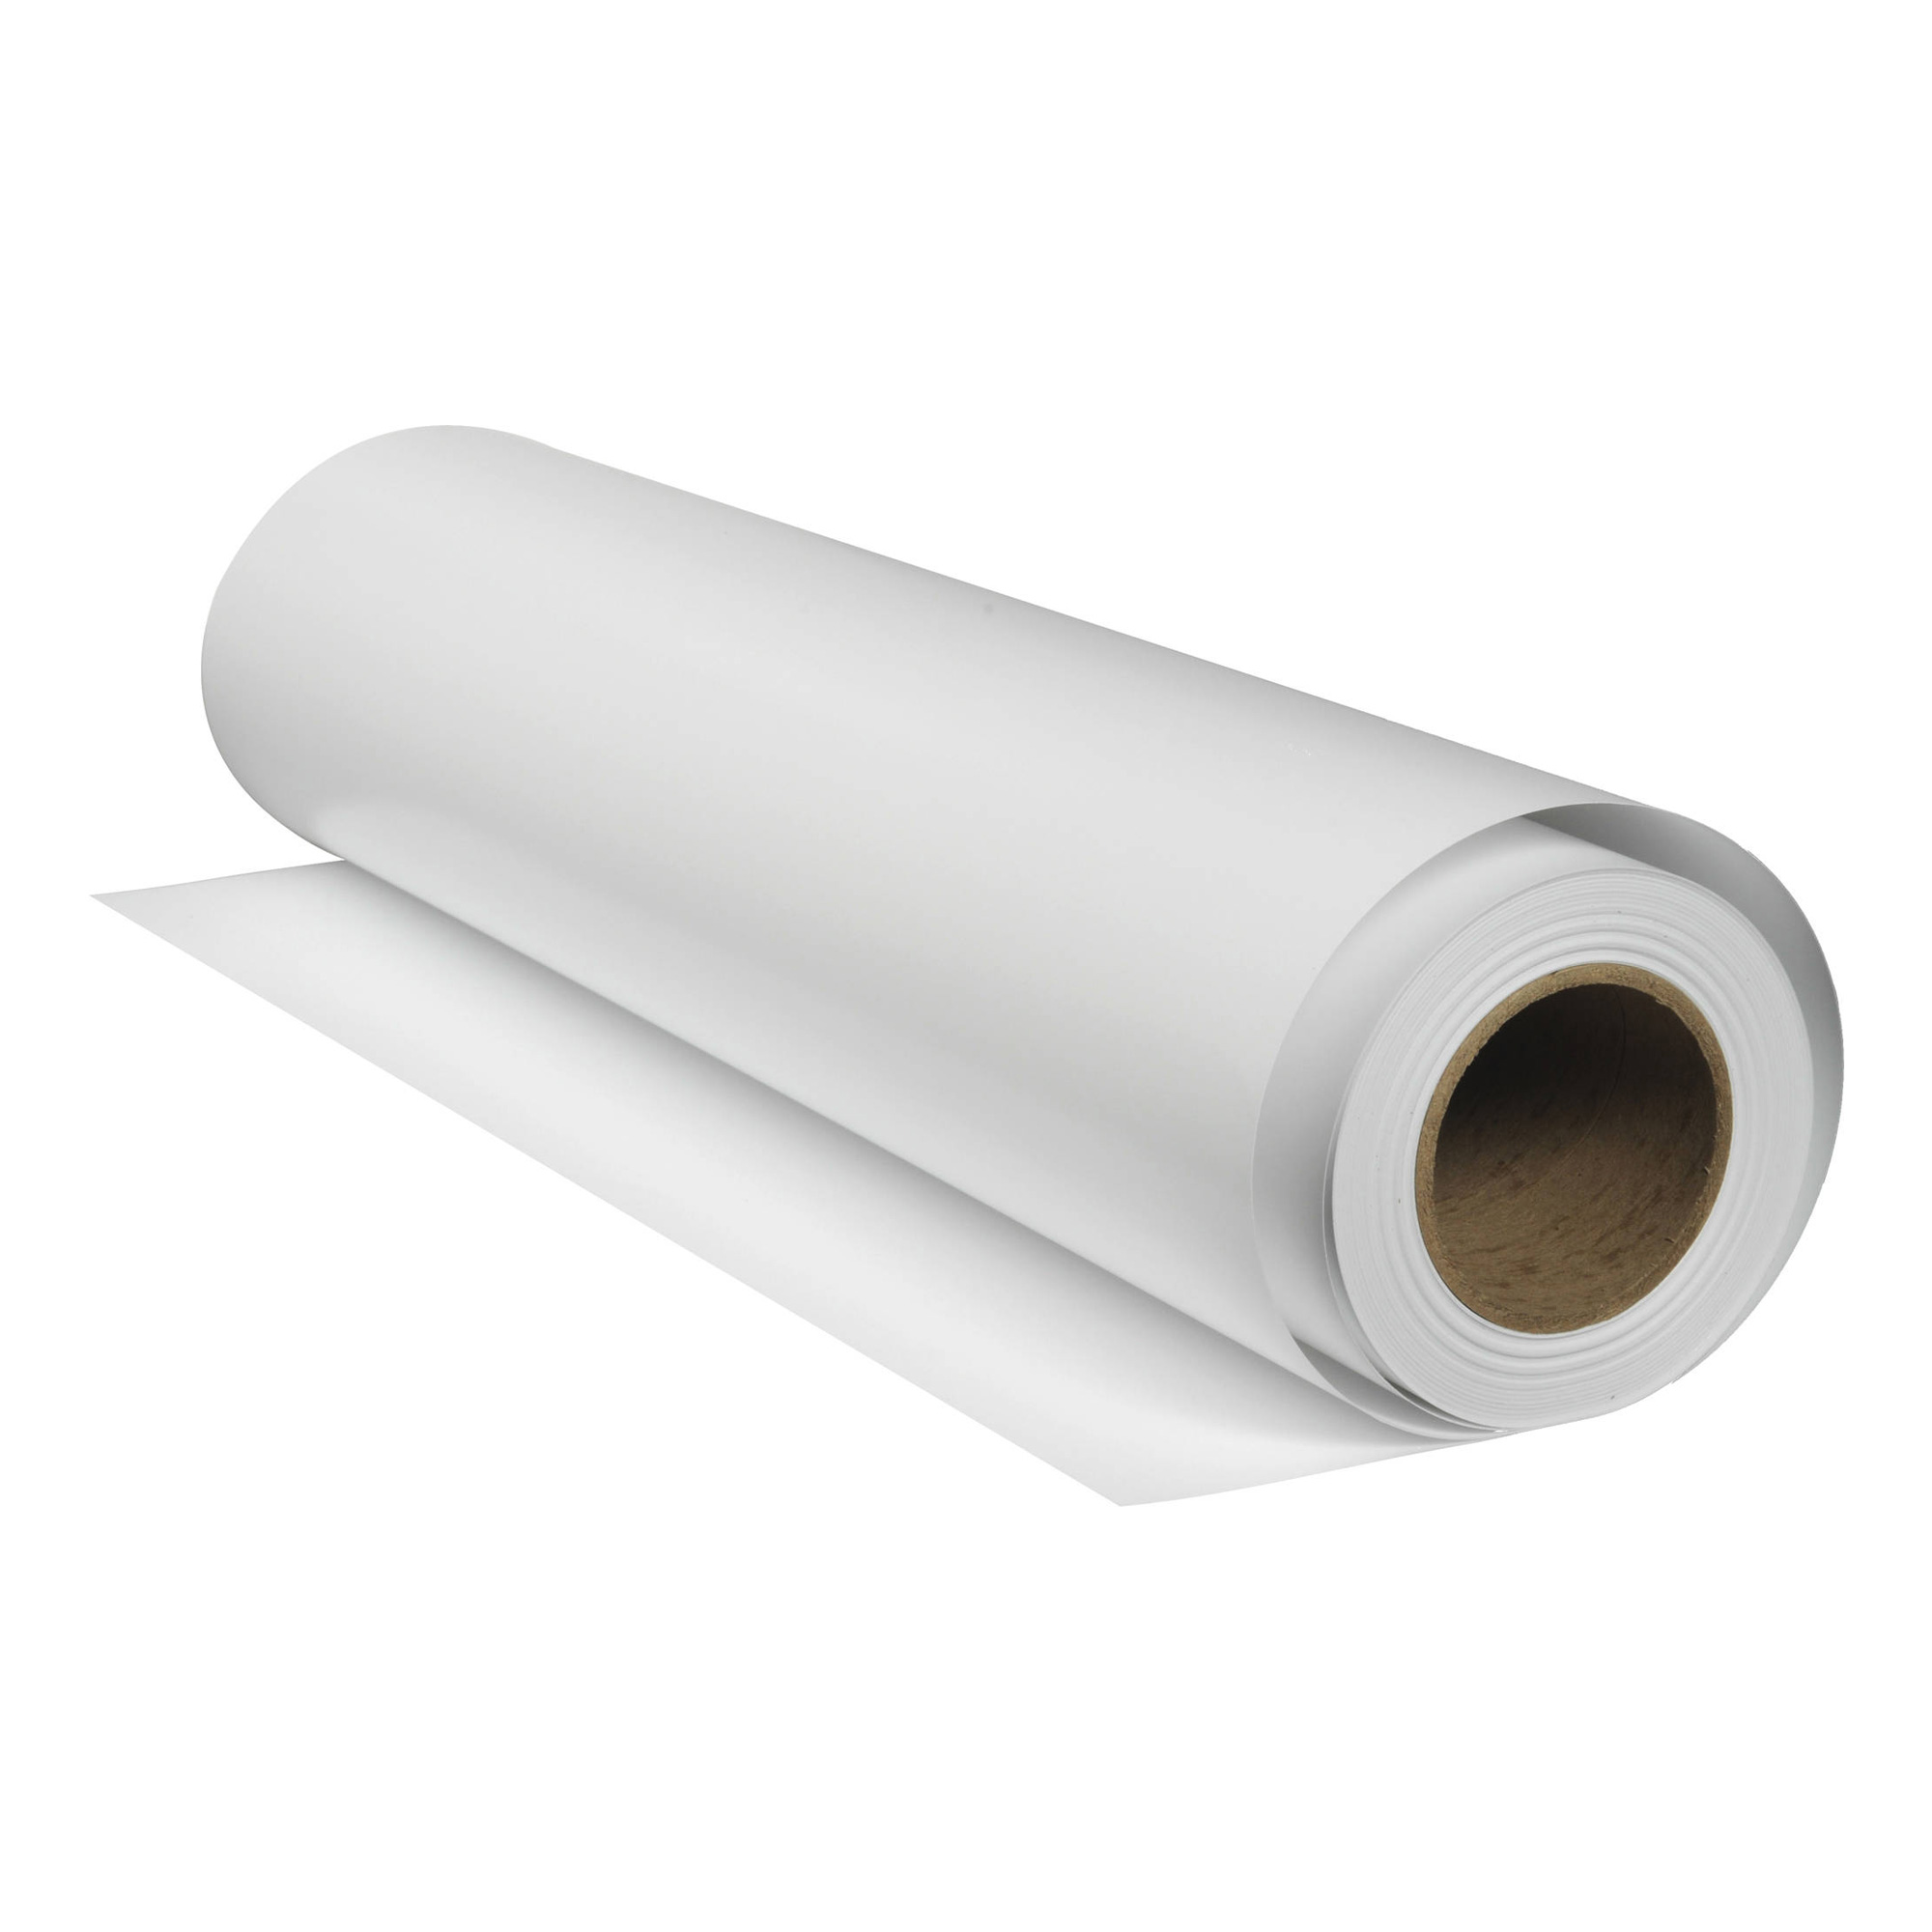 44 In. x 50 Ft. Legacy Fibre Paper Roll